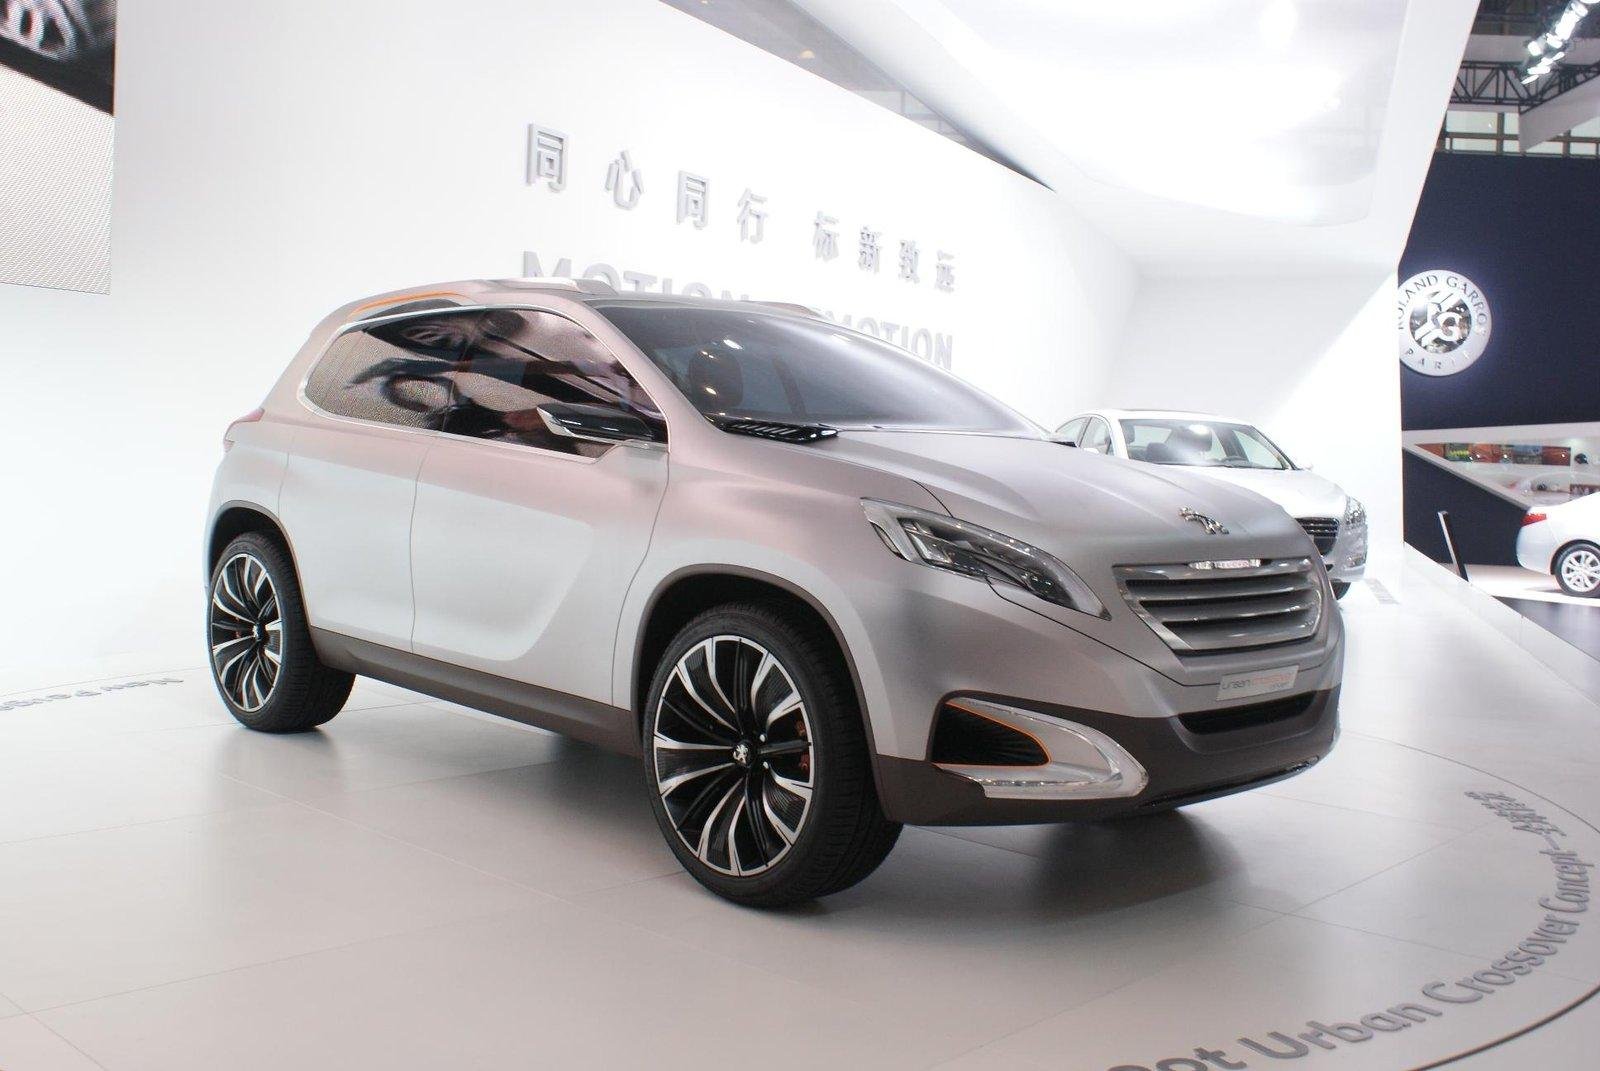 Garage Peugeot Paris Peugeot Urban Crossover Concept As 2008 Ps Garage Automotive